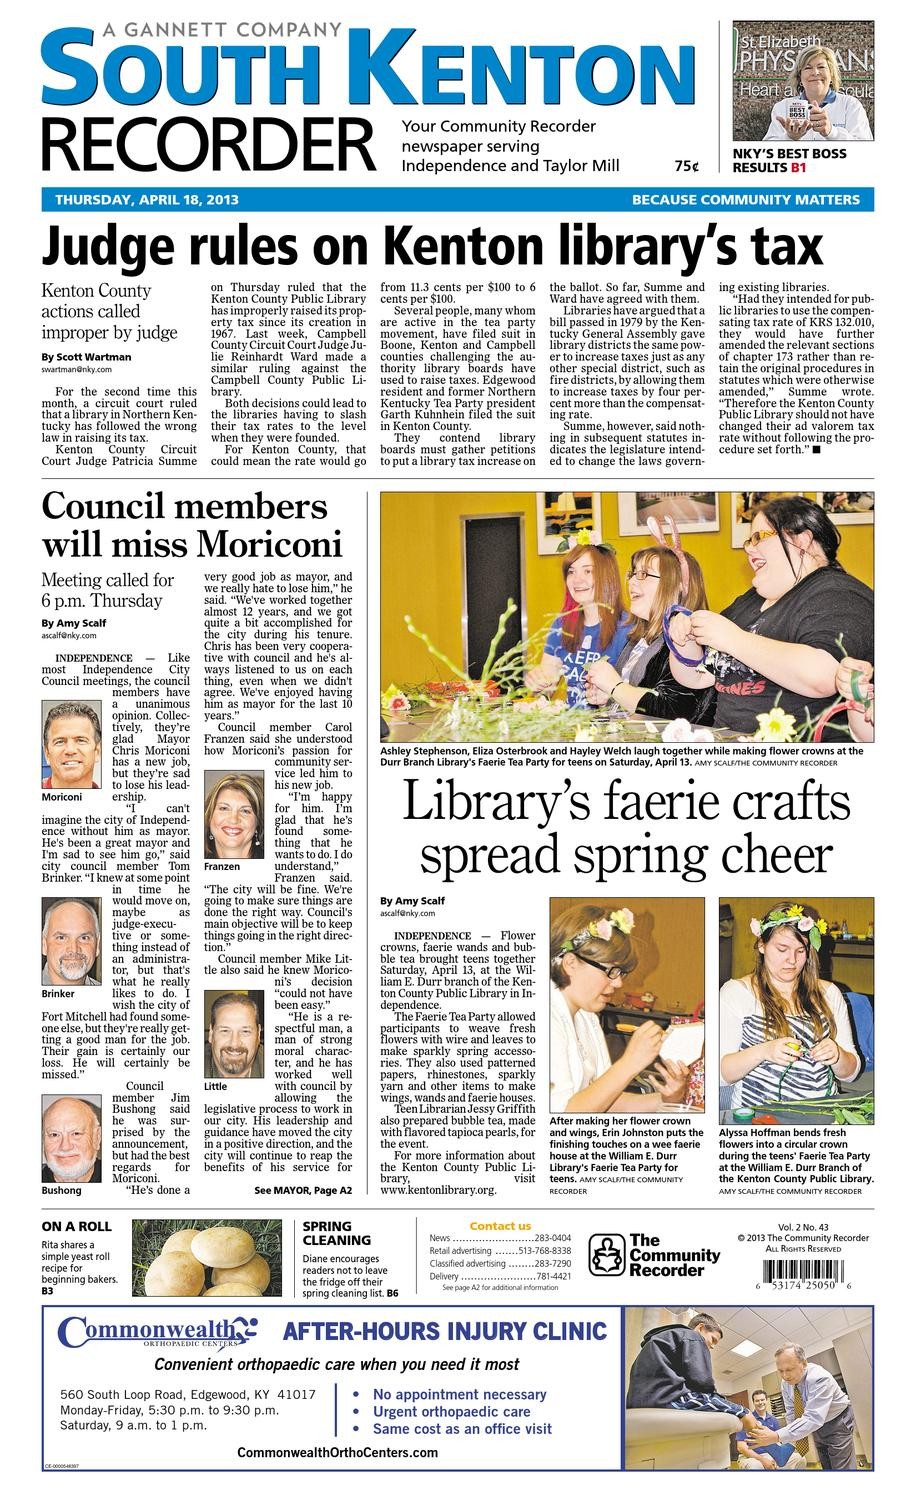 south-kenton-recorder-041813 by Enquirer Media - issuu